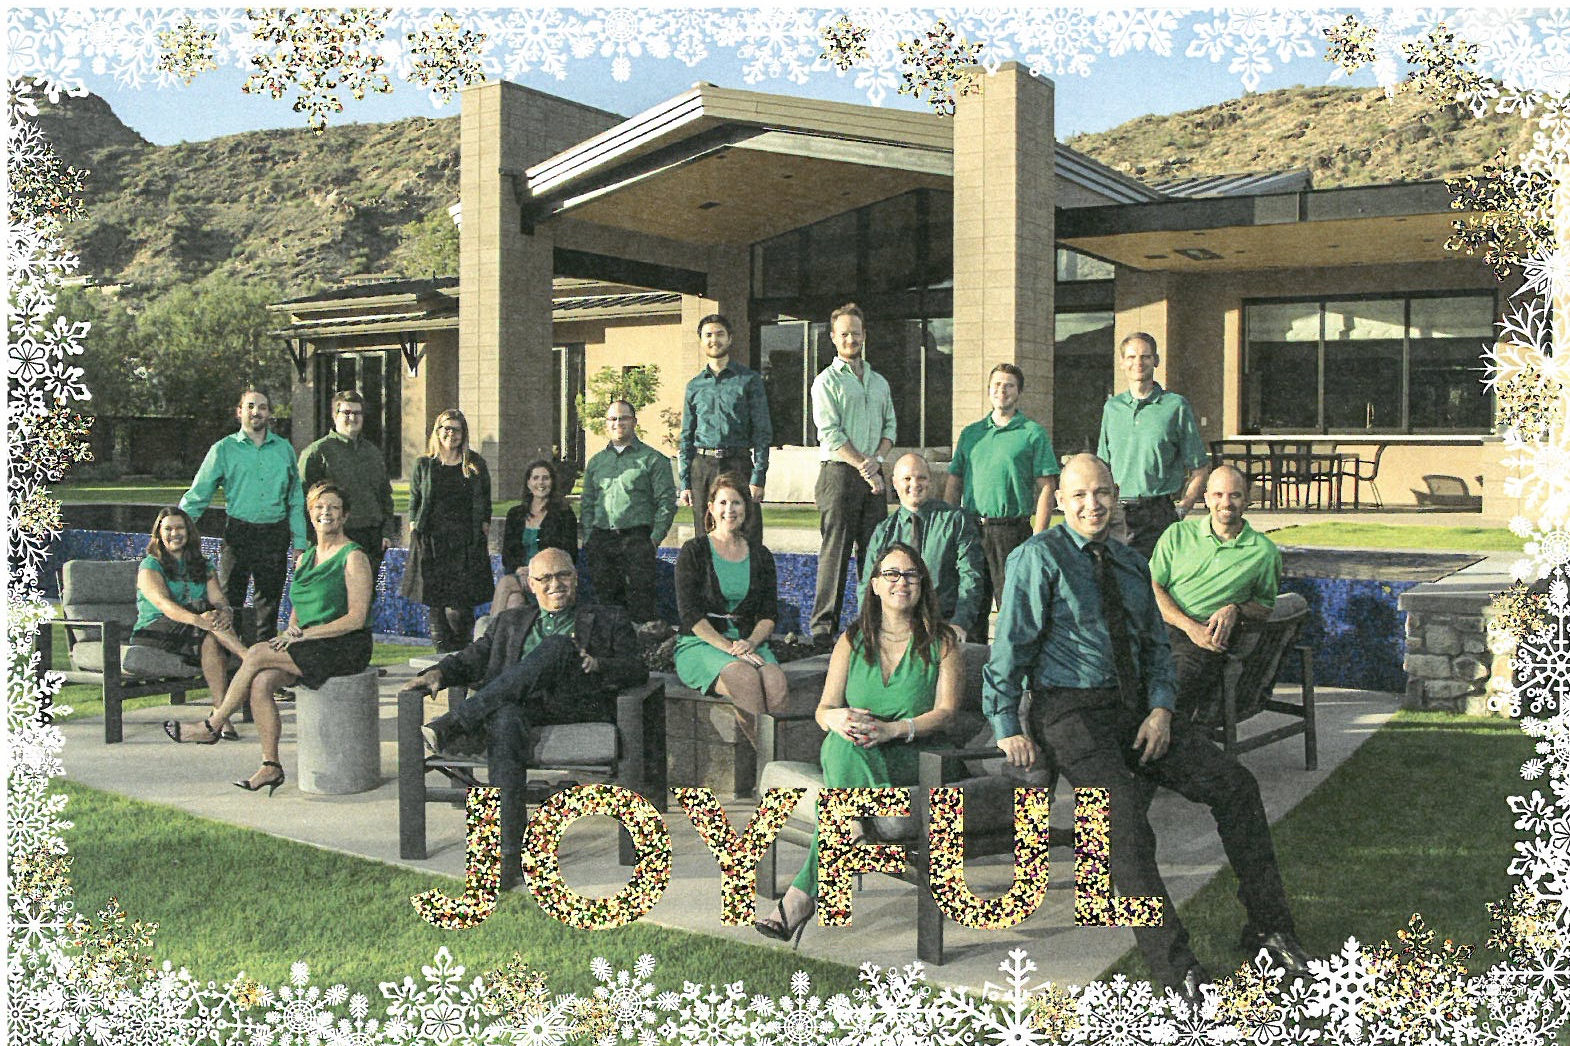 Happy Holidays from the crew at Candelaria Design